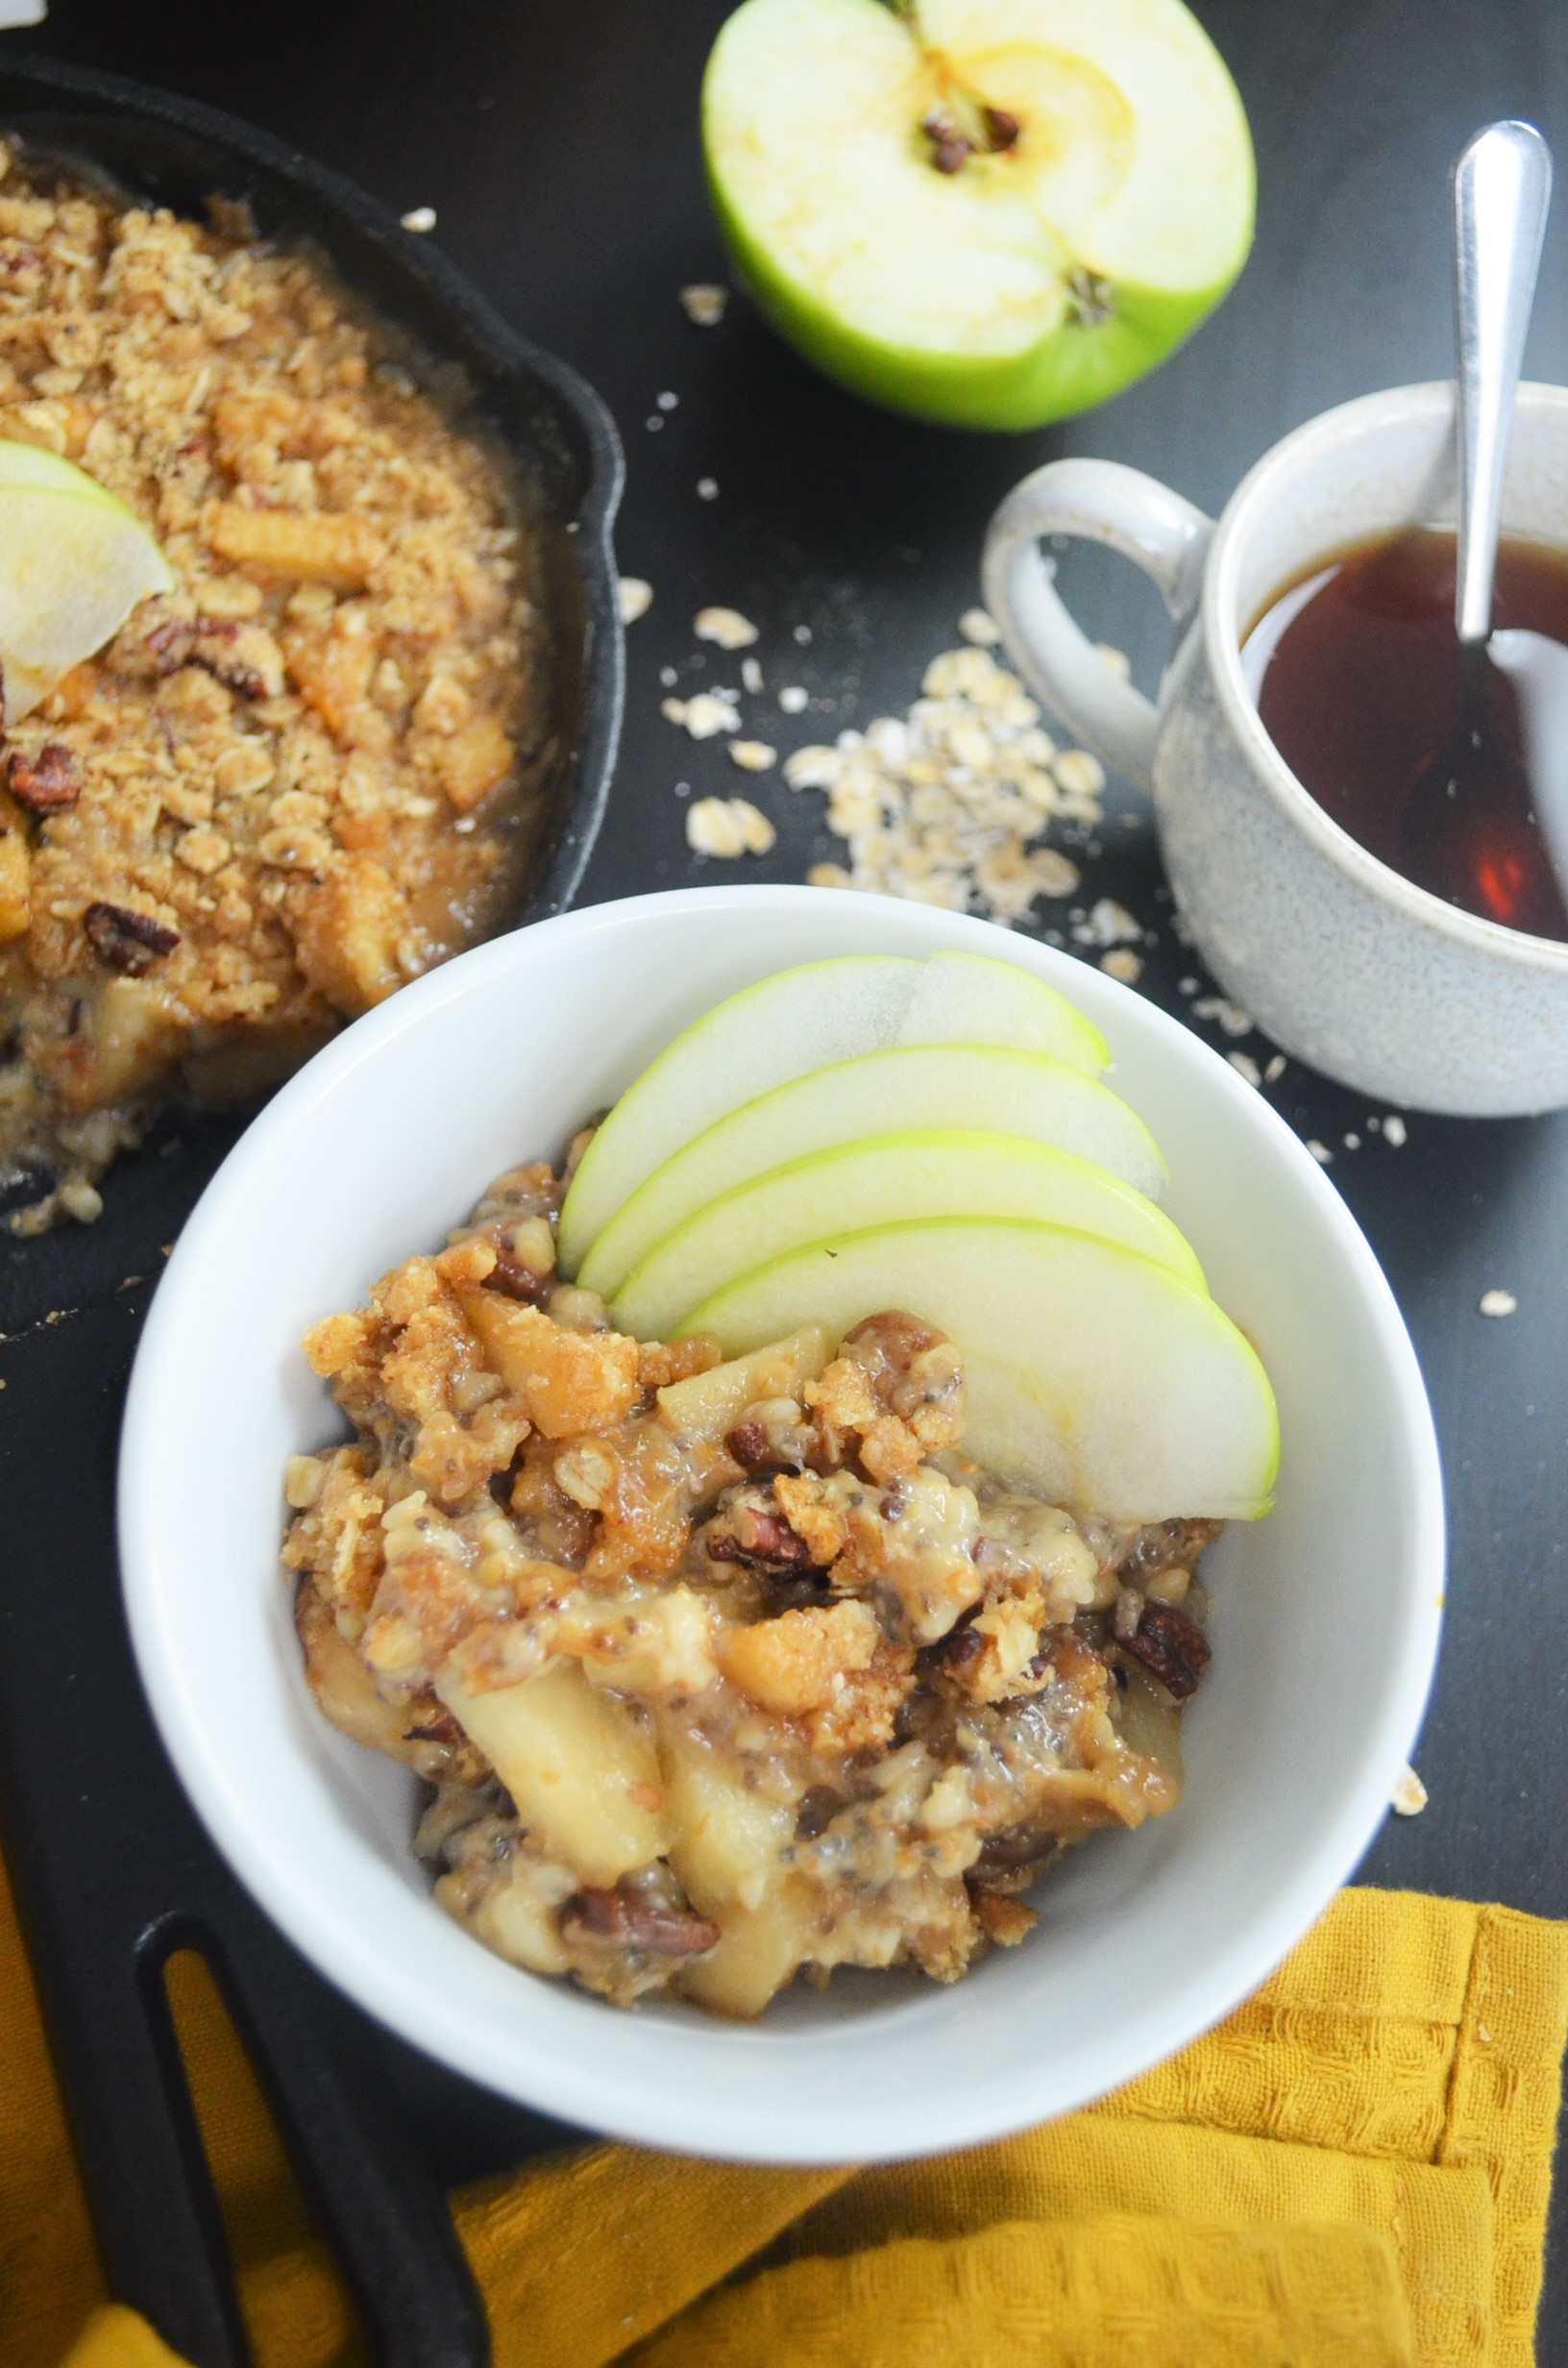 Baked Apple Cinnamon Oatmeal For Two